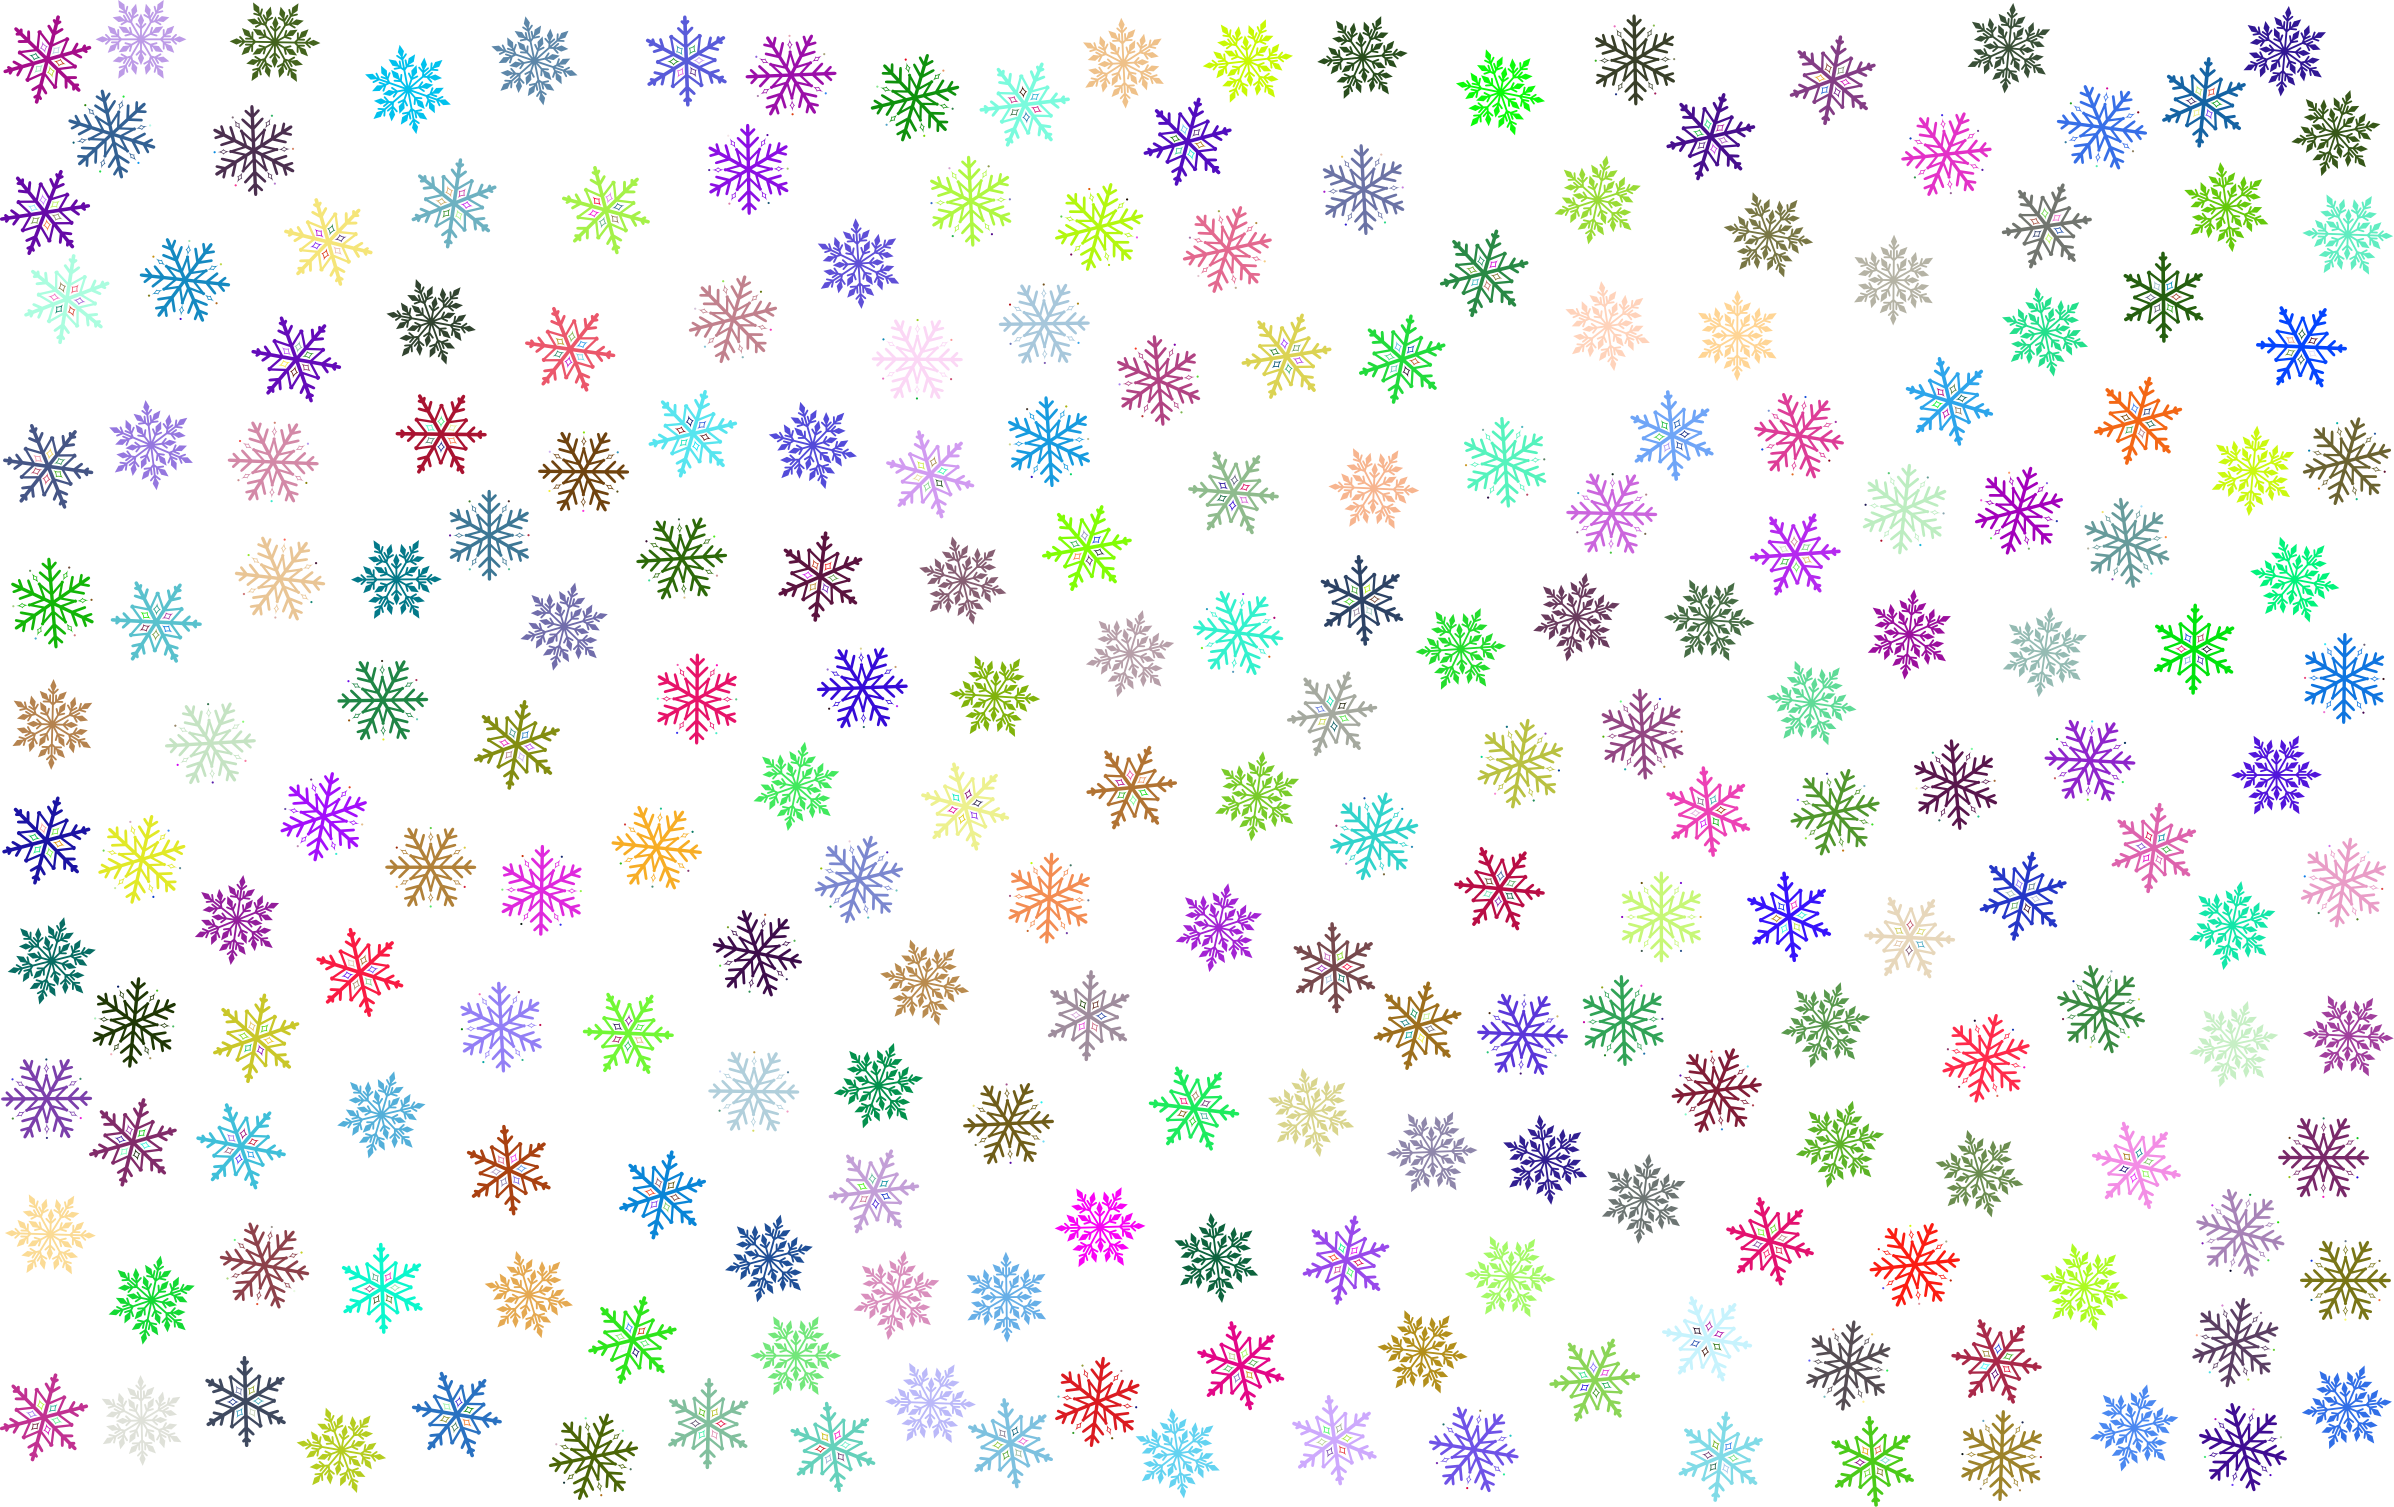 Snowflake wallpaper clipart graphic free library Clipart - Prismatic Snowflakes Pattern No Background graphic free library